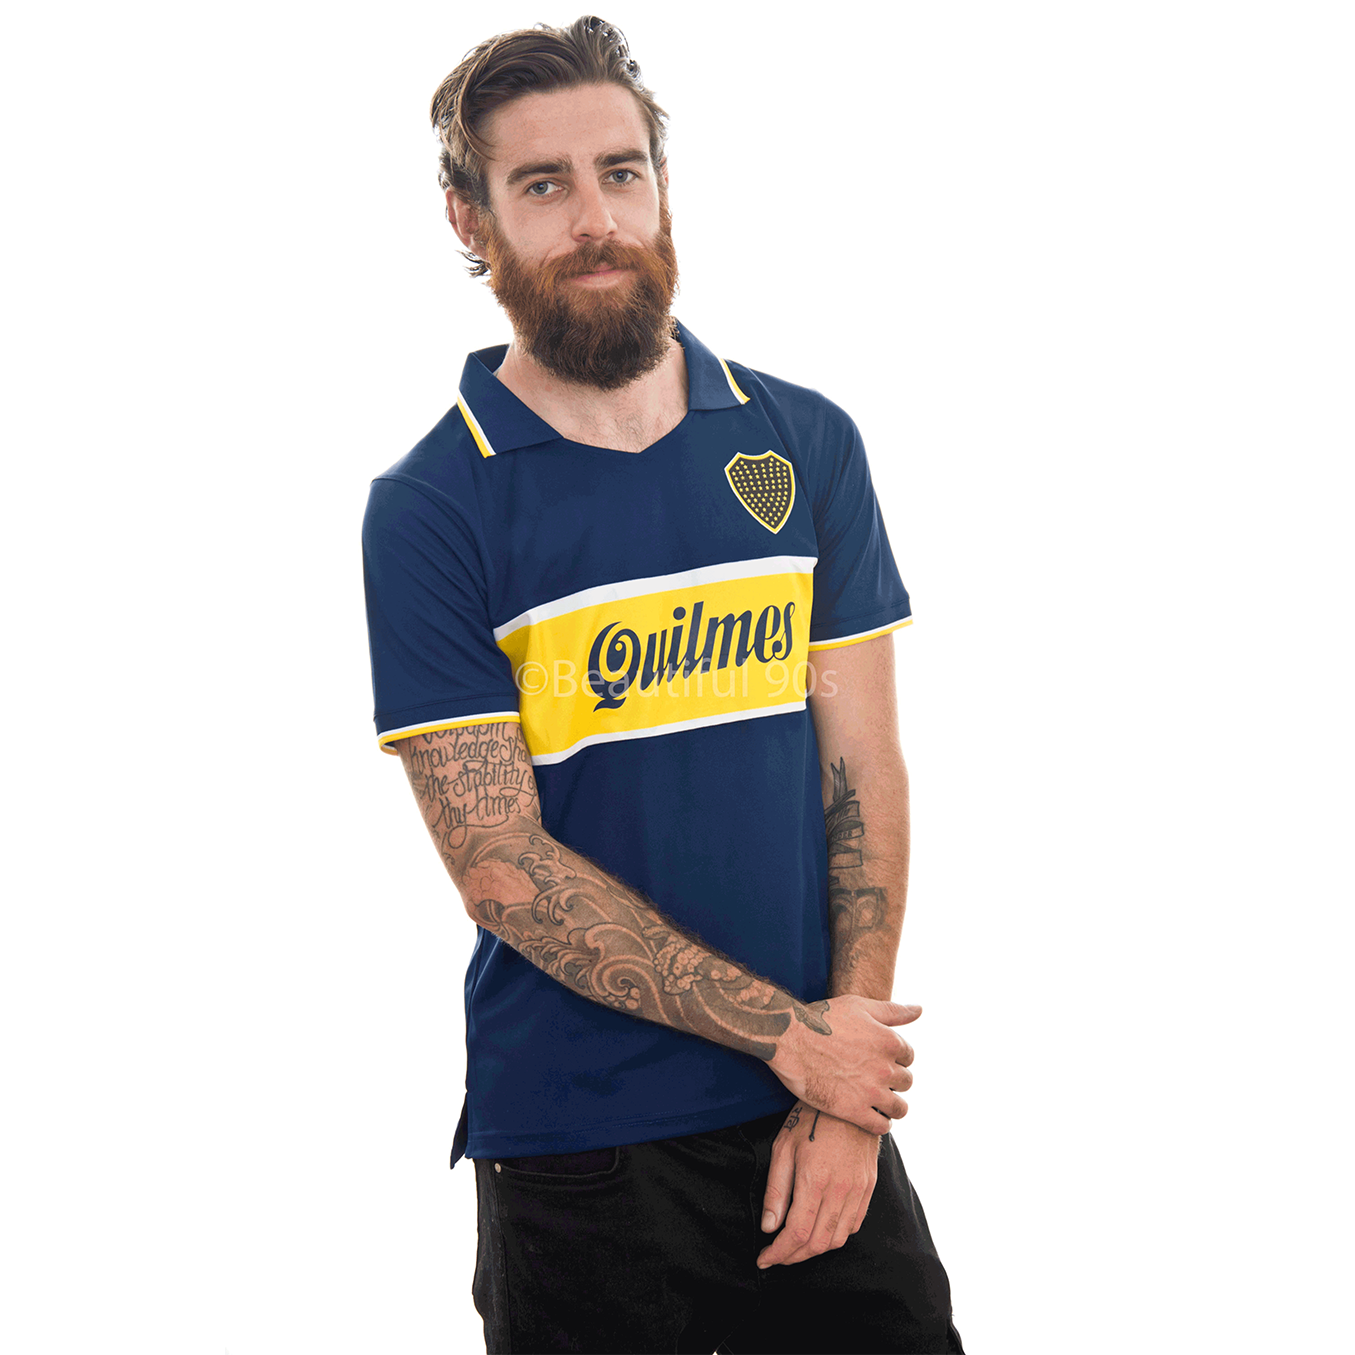 1997 Boca Quilmes home retro replica football shirt